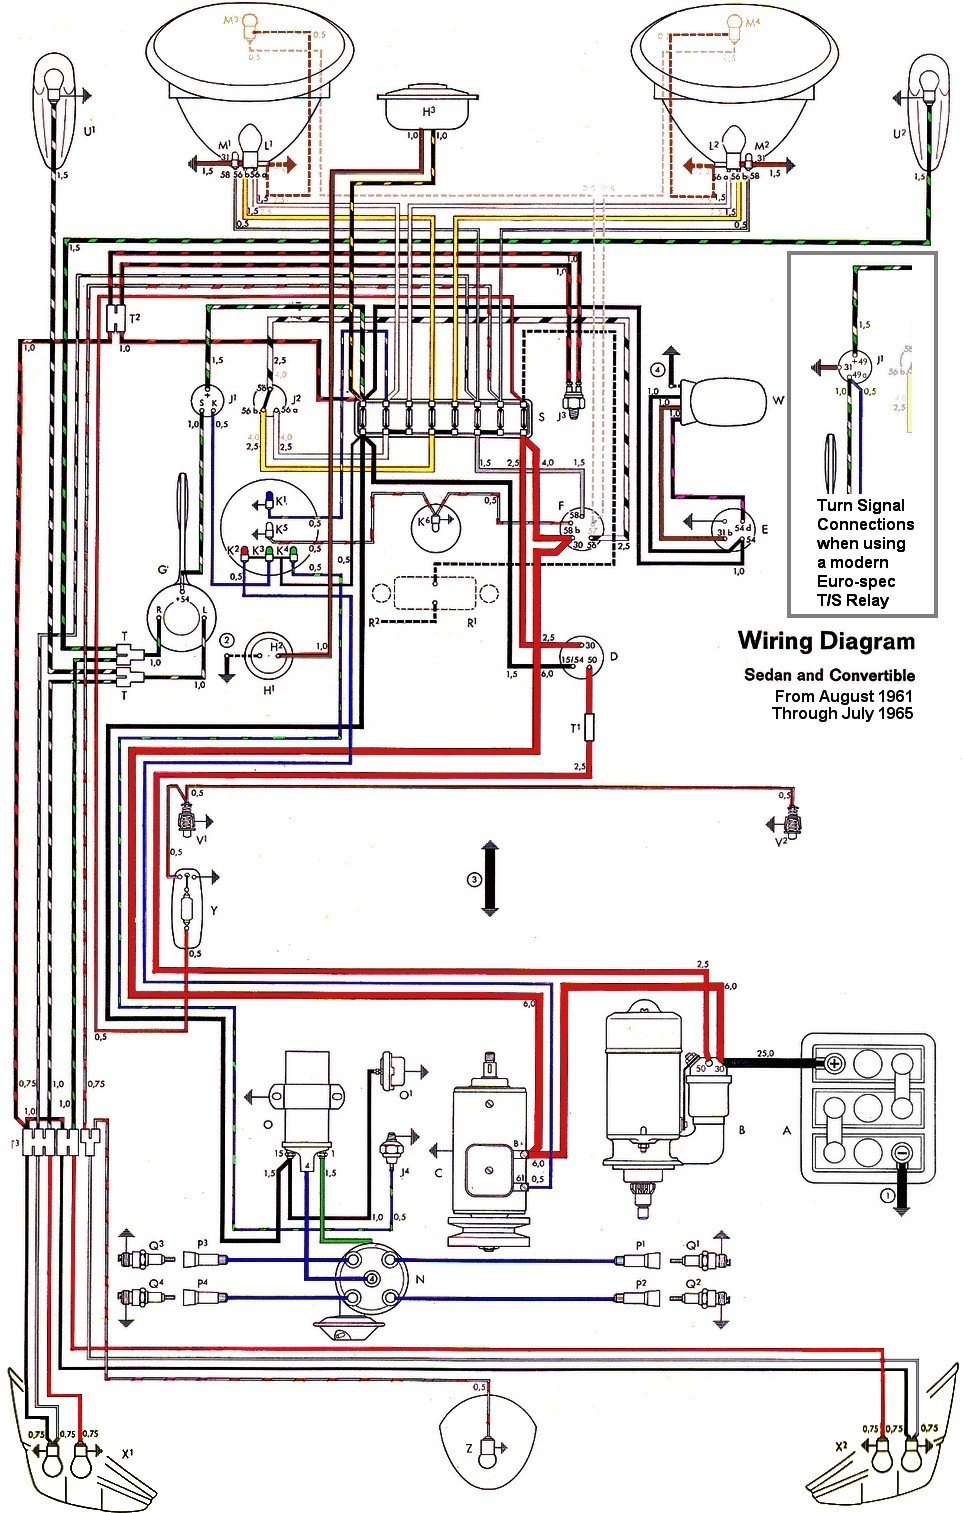 bug_62 65withinset wiring diagram vw beetle sedan and convertible 1961 1965 vw vw bus samba wiring diagram at bayanpartner.co